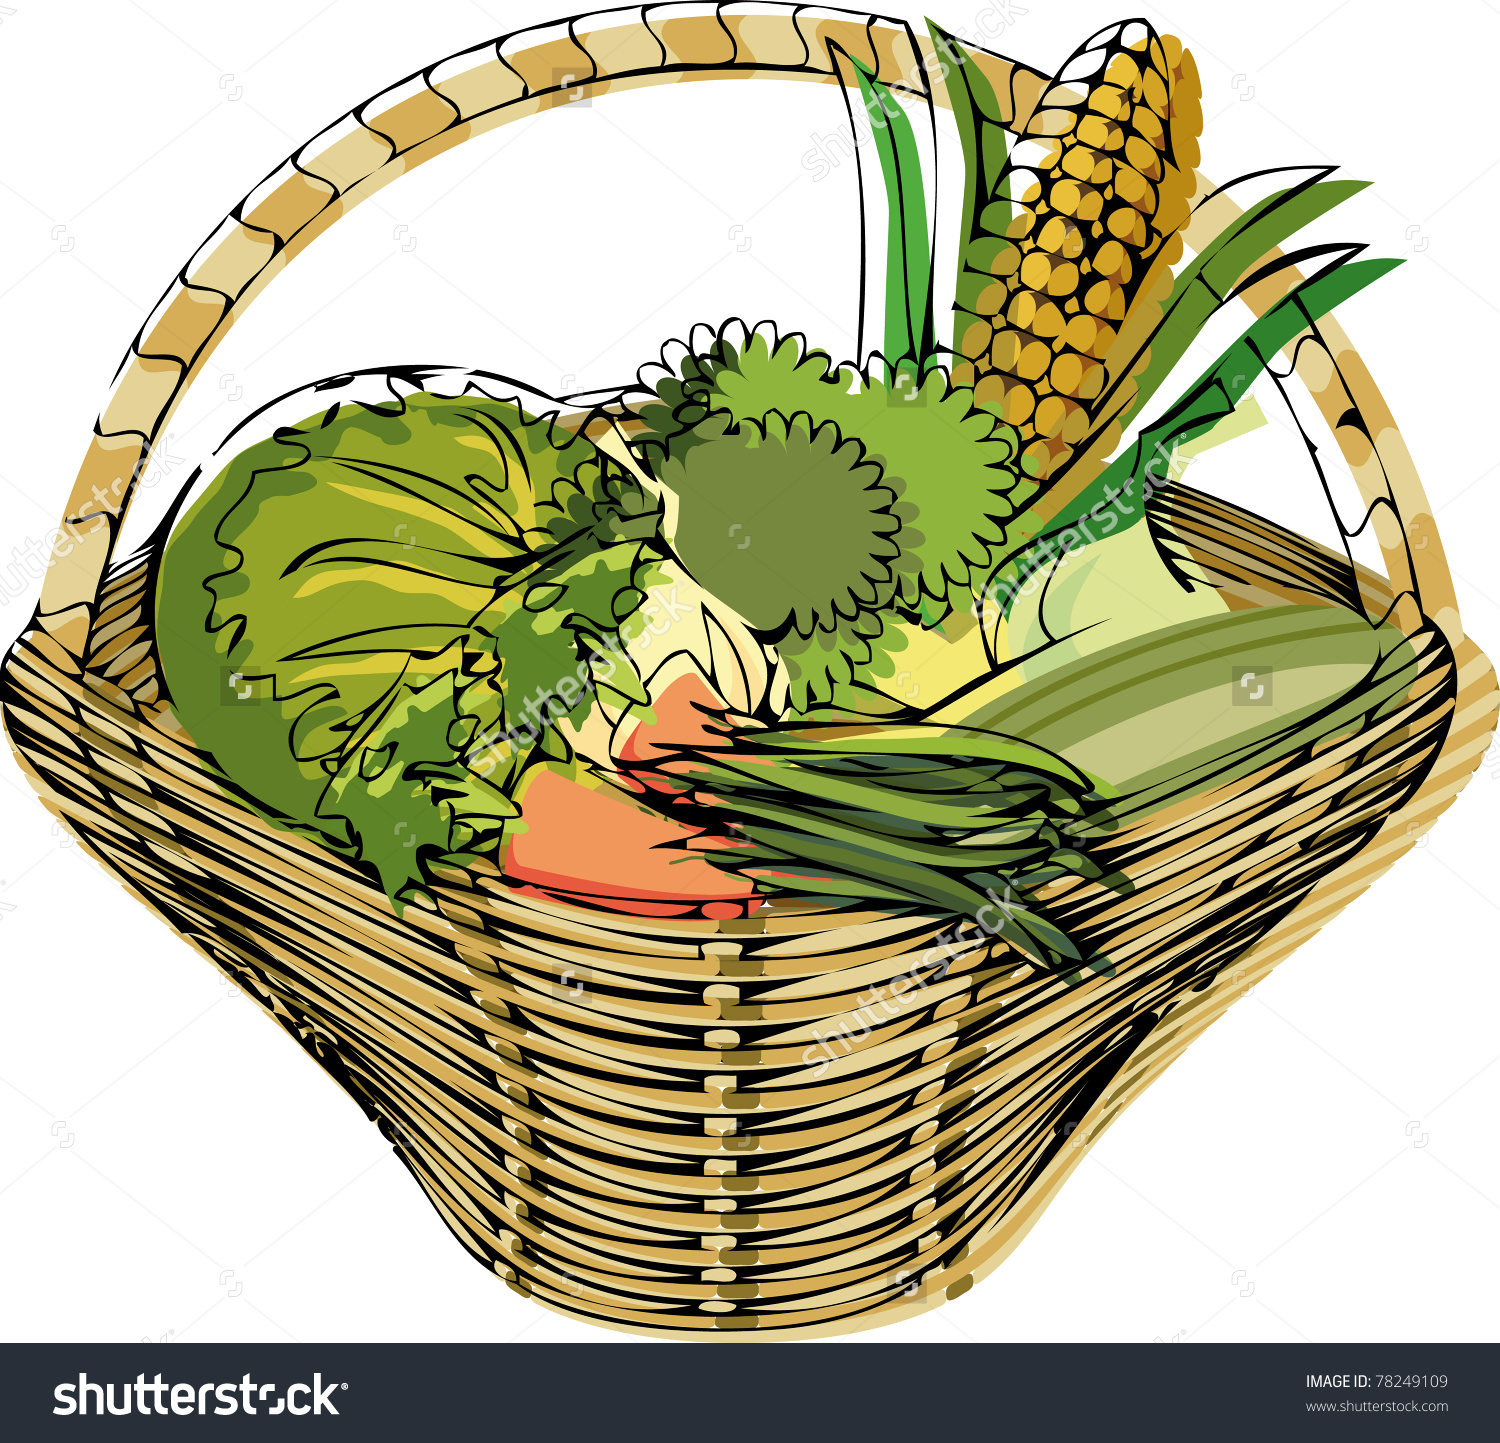 Broccoli Basket Vegetables Market Cabbage Carrot Corn French Beans.